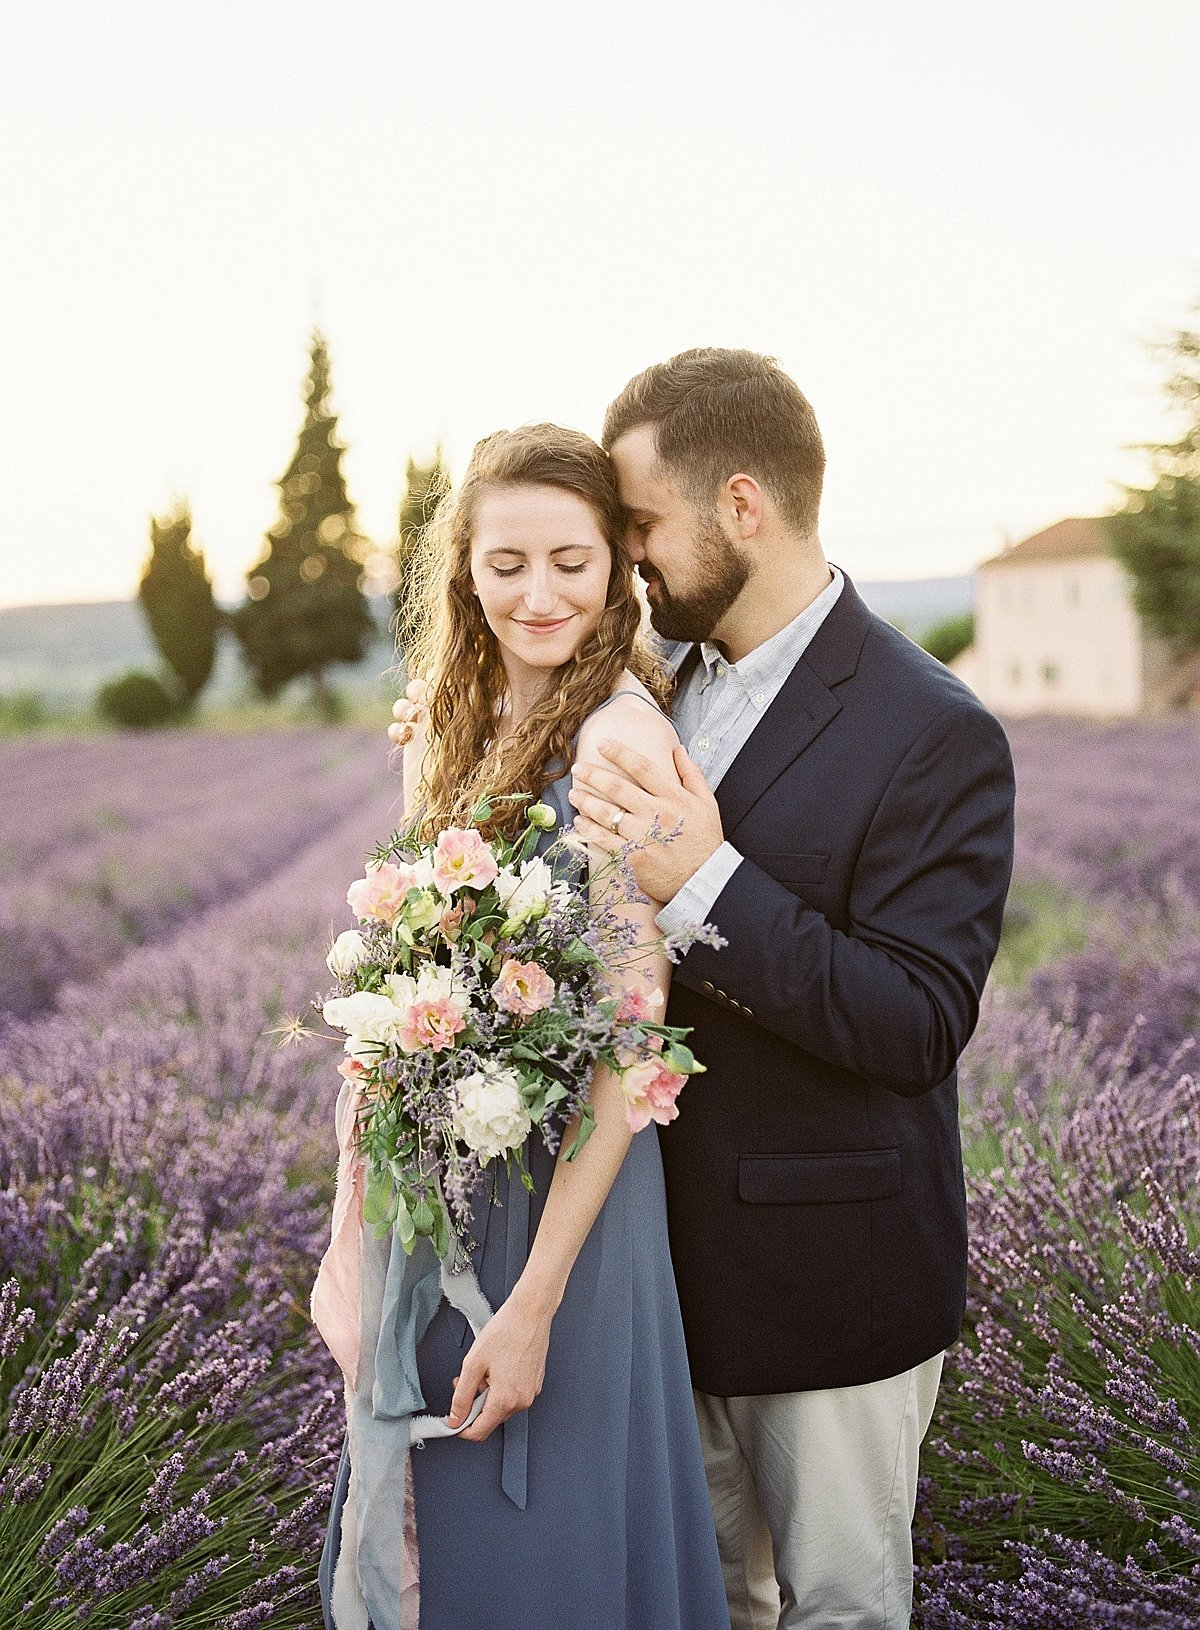 France-lavender-anniversary-session-alicia-yarrish-photography-27-2